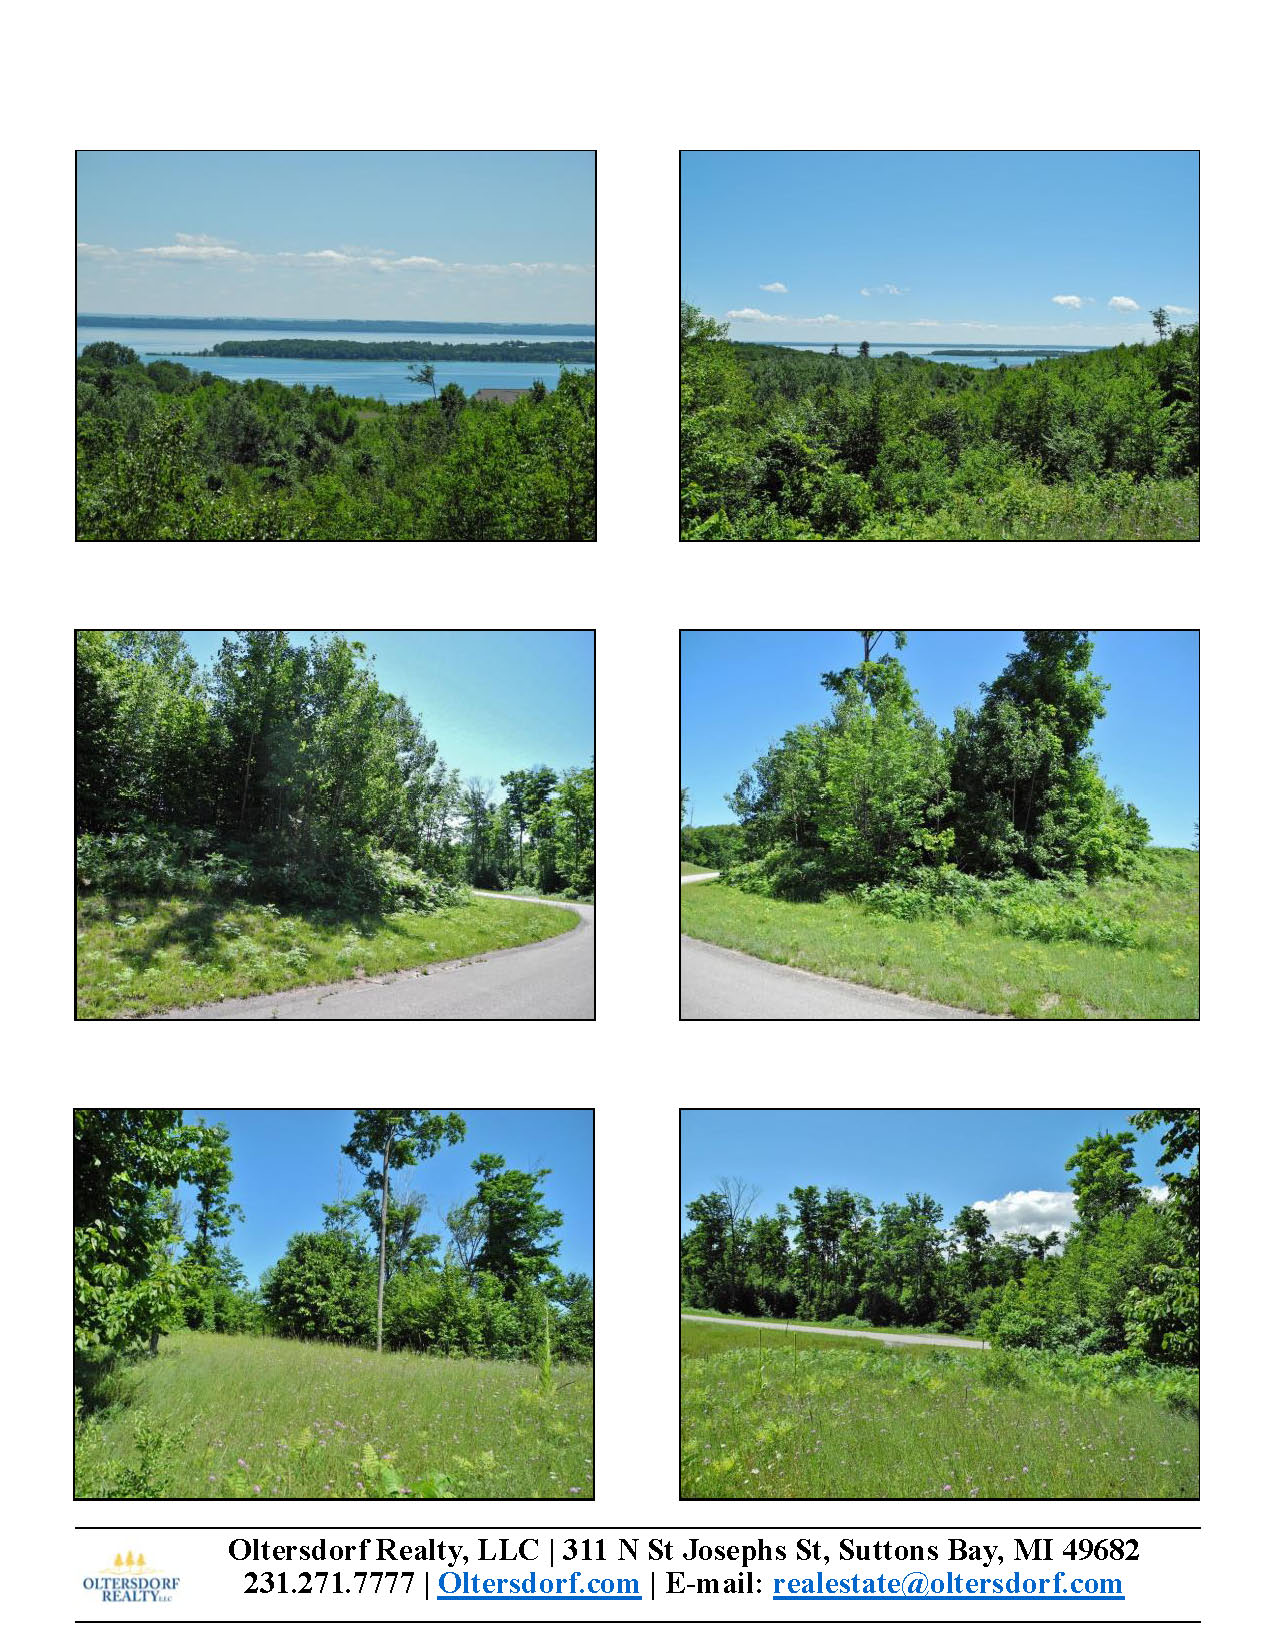 1930 N Blue Water Ct, Suttons Bay, Leelanau County, Vacant Waterview Lot For Sale By Oltersdorf Realty LLC - Marketing Packet (2).jpg